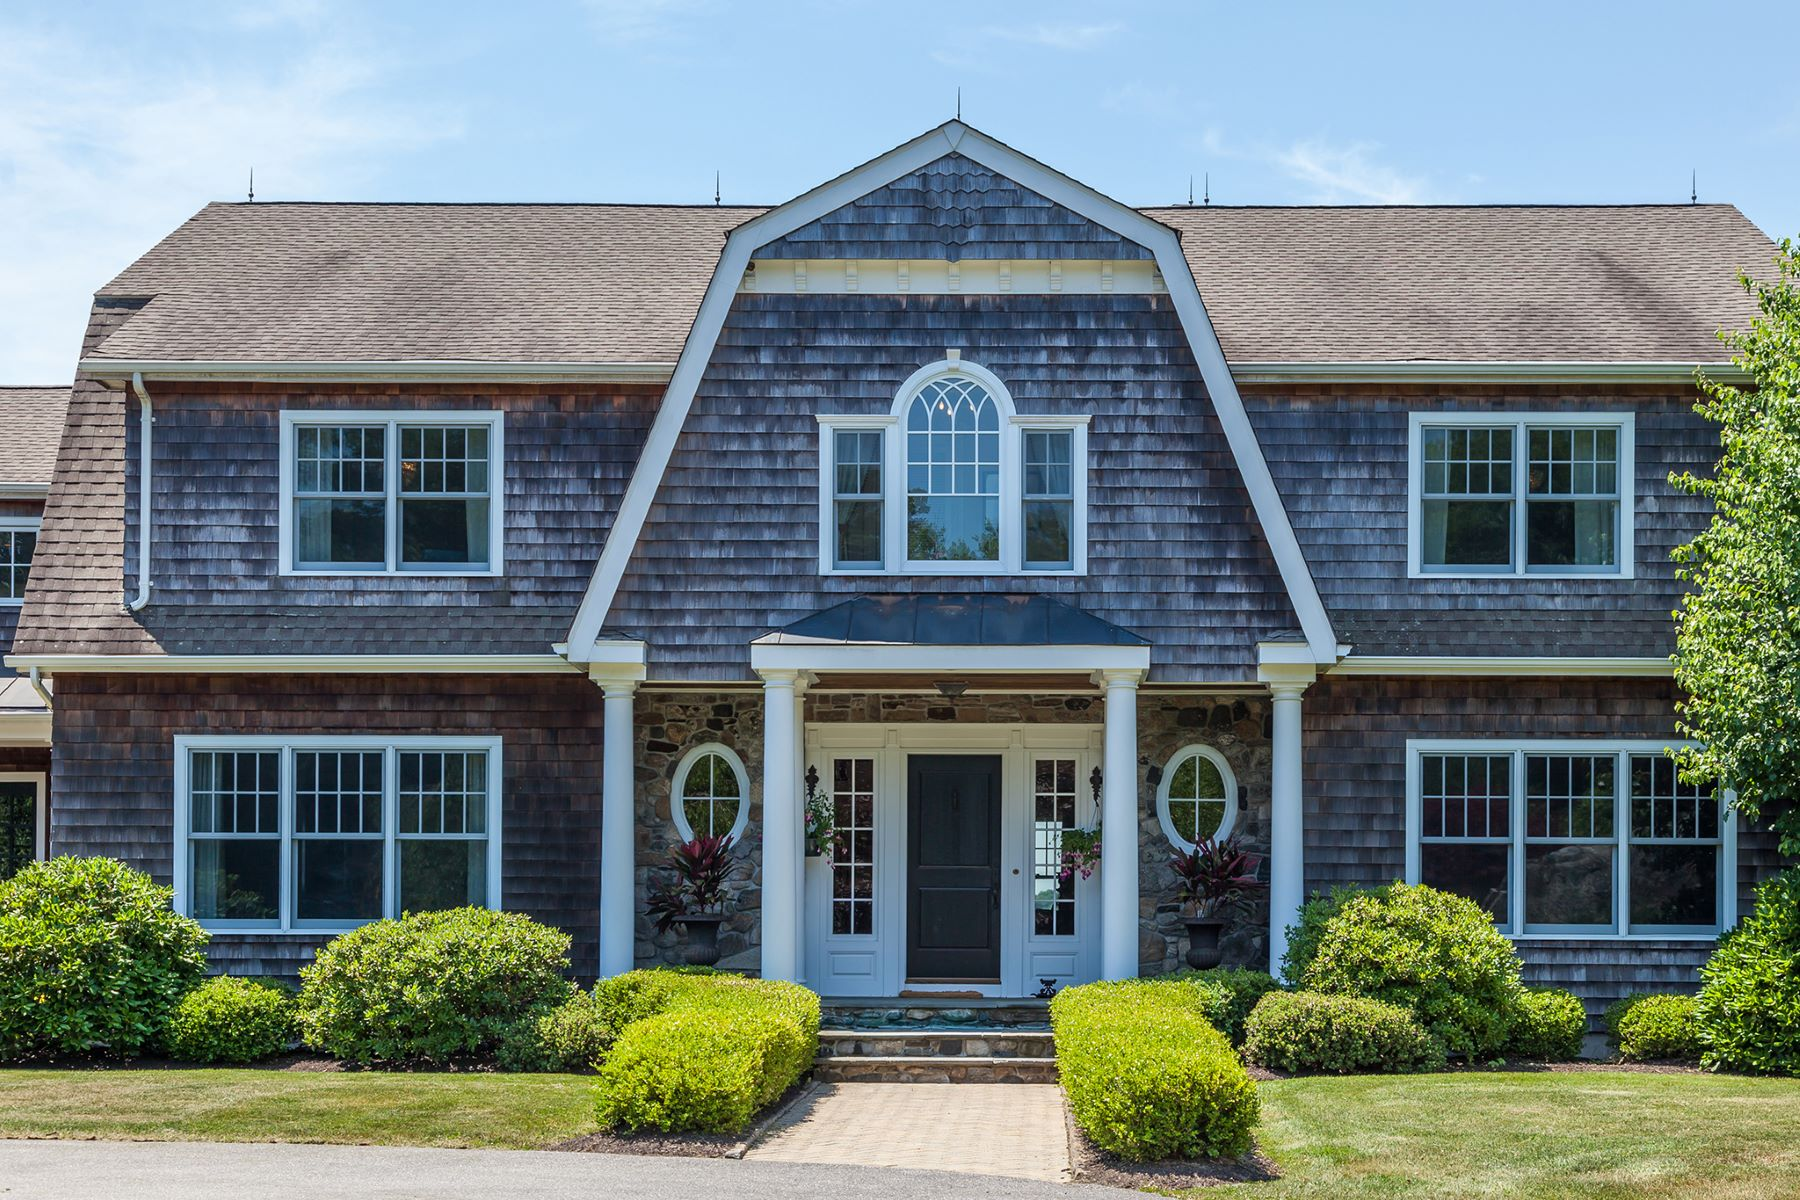 Casa Unifamiliar por un Venta en Custom Shingle-Style Home with Amazing Views 395 Maple Street Litchfield, Connecticut 06759 Estados Unidos